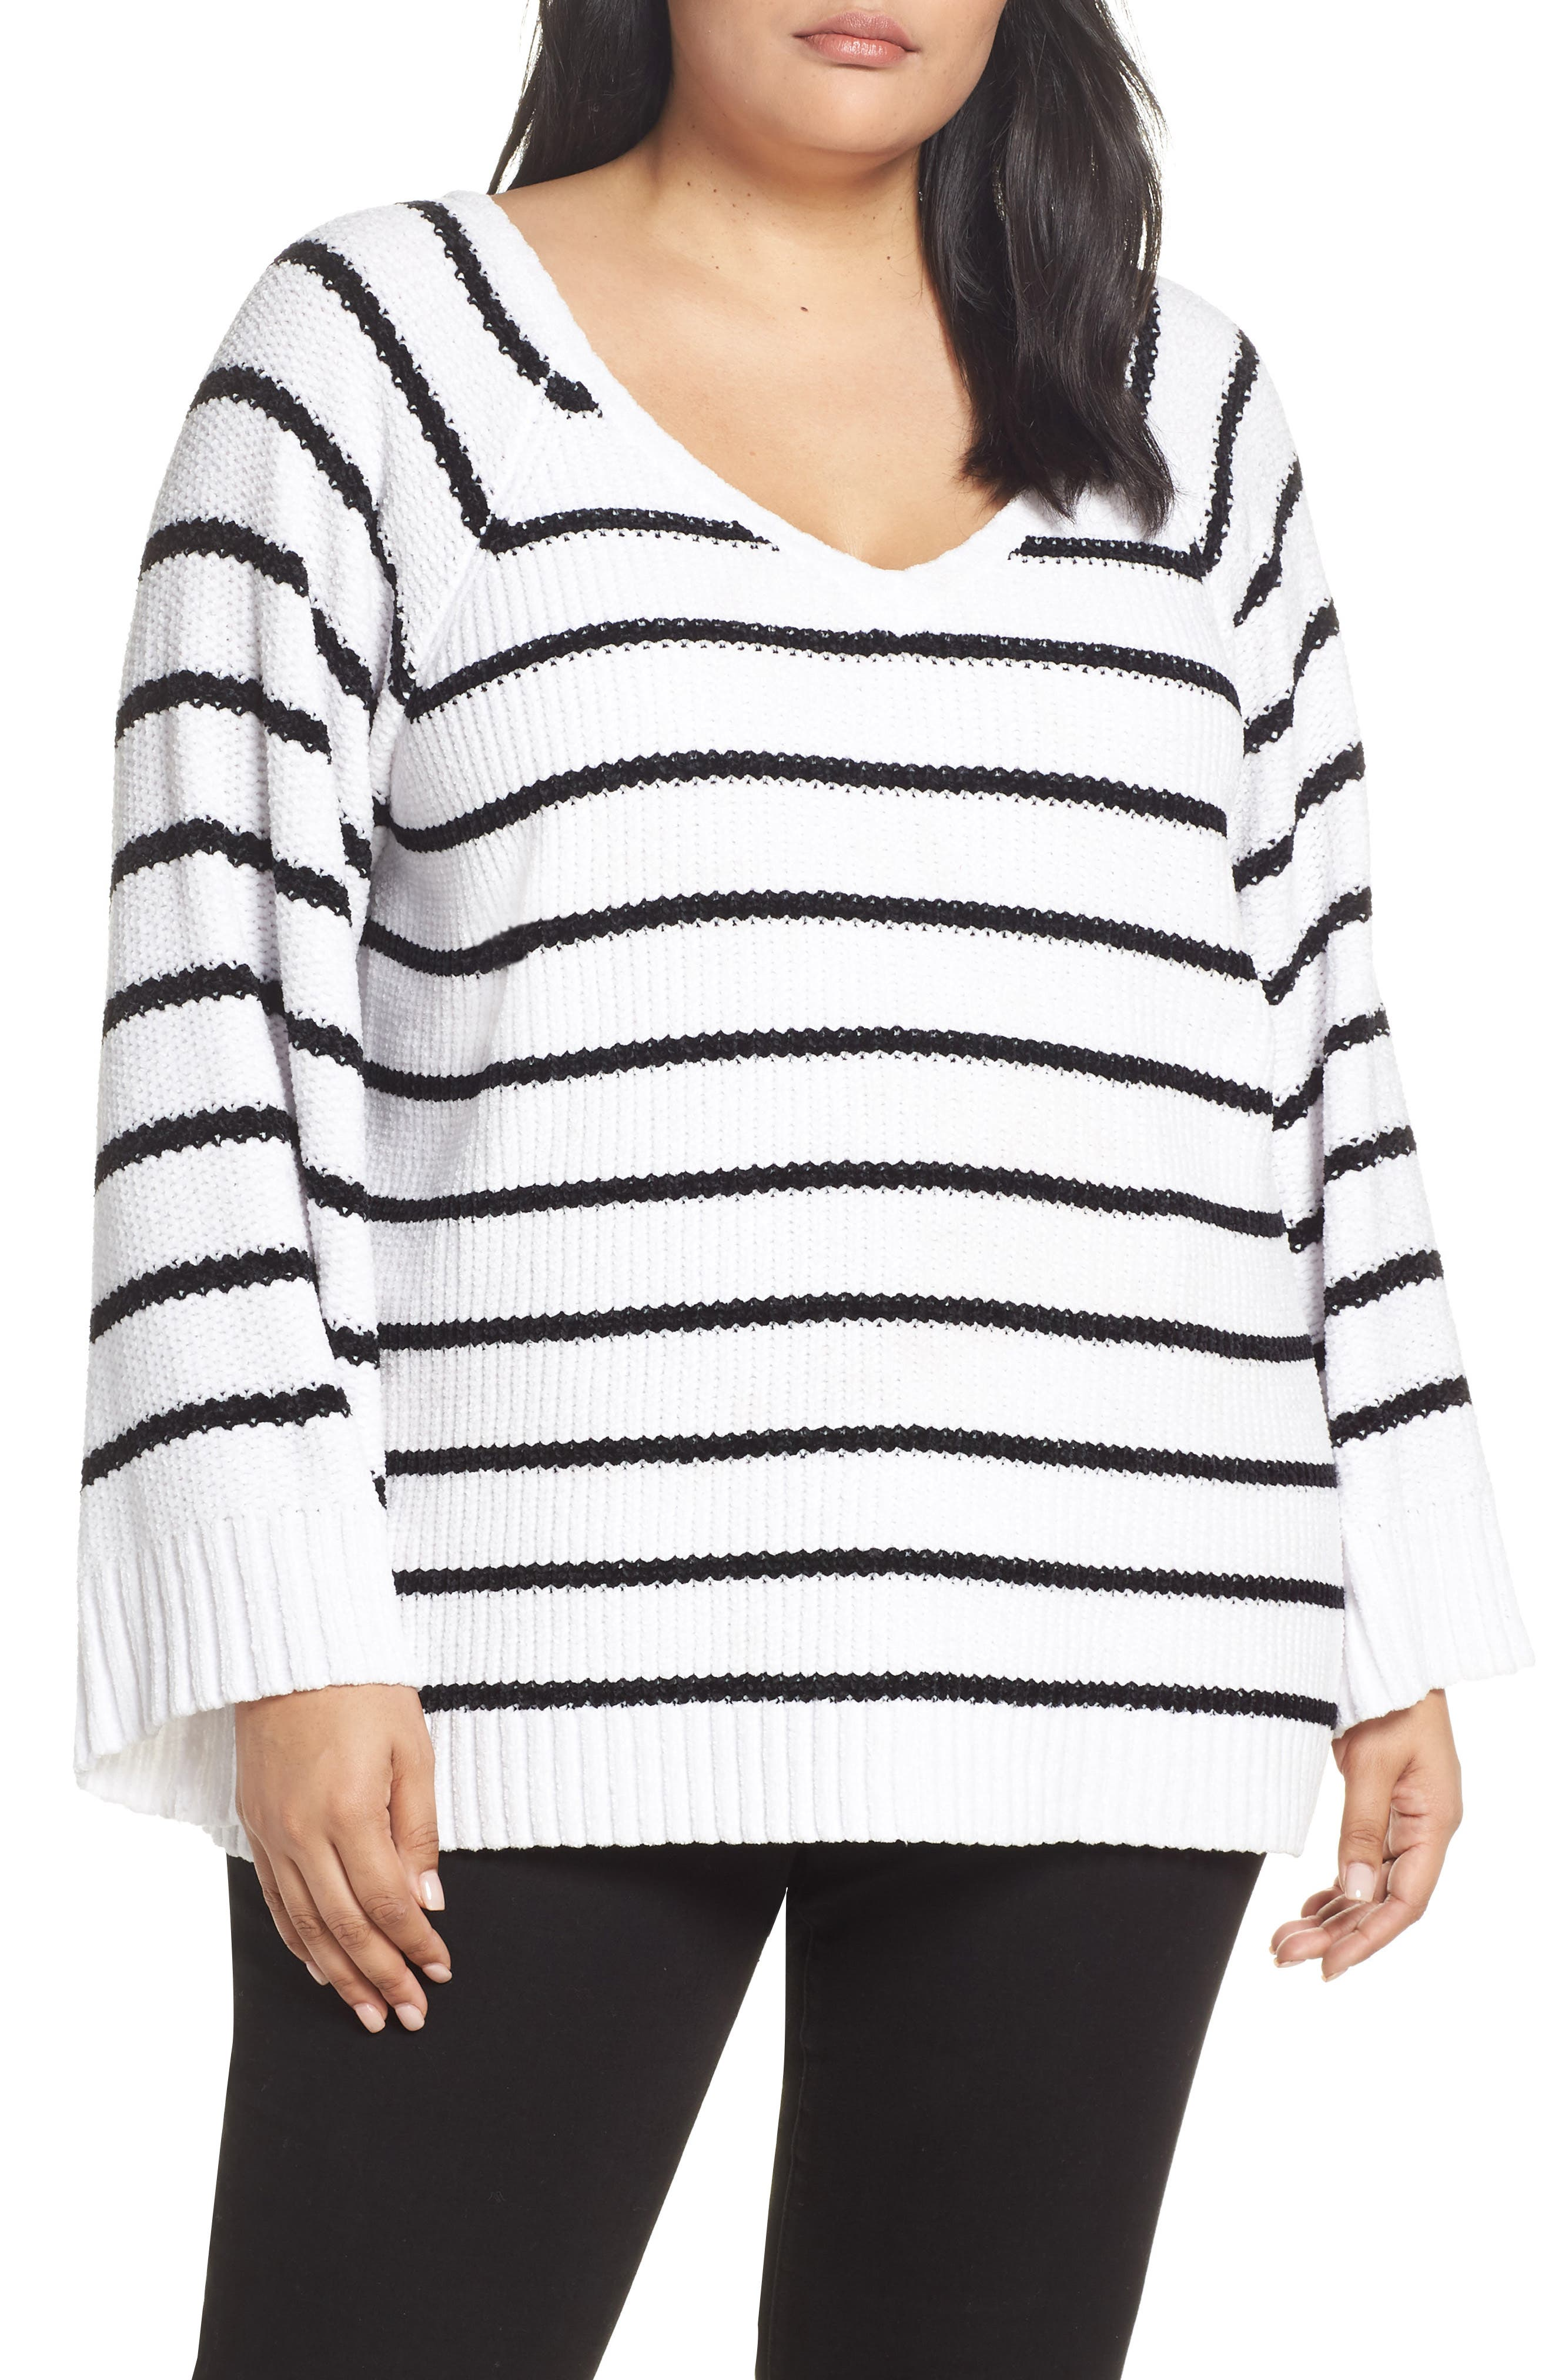 &.LAYERED, Stripe V-Neck Sweater, Main thumbnail 1, color, 110